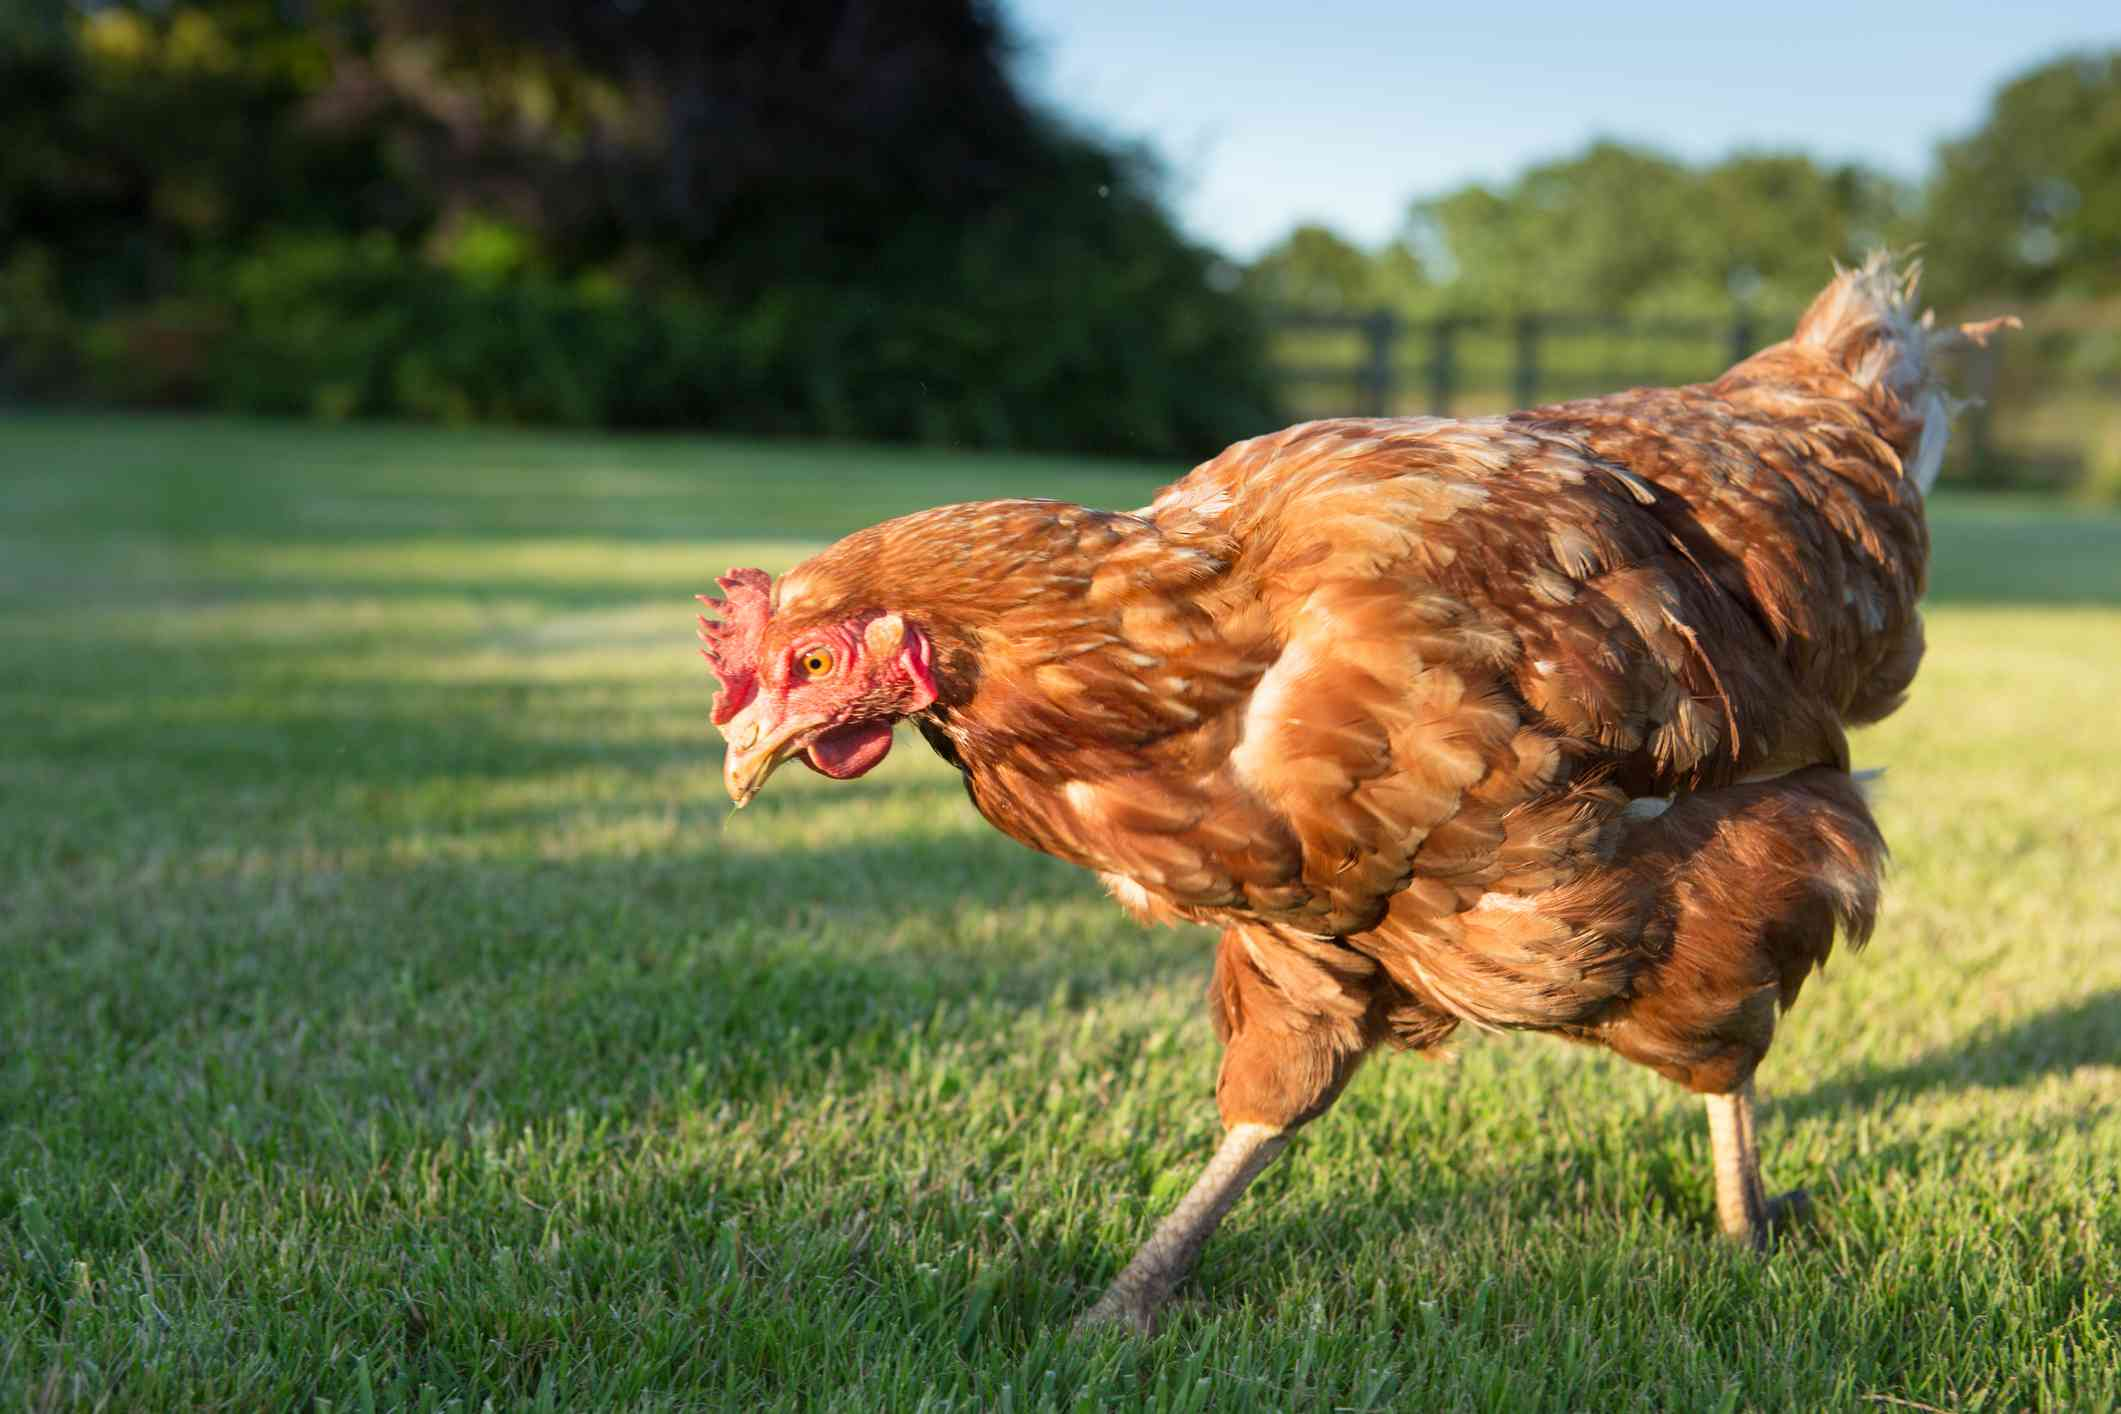 A hen walking around on grass looking for bugs to eat.